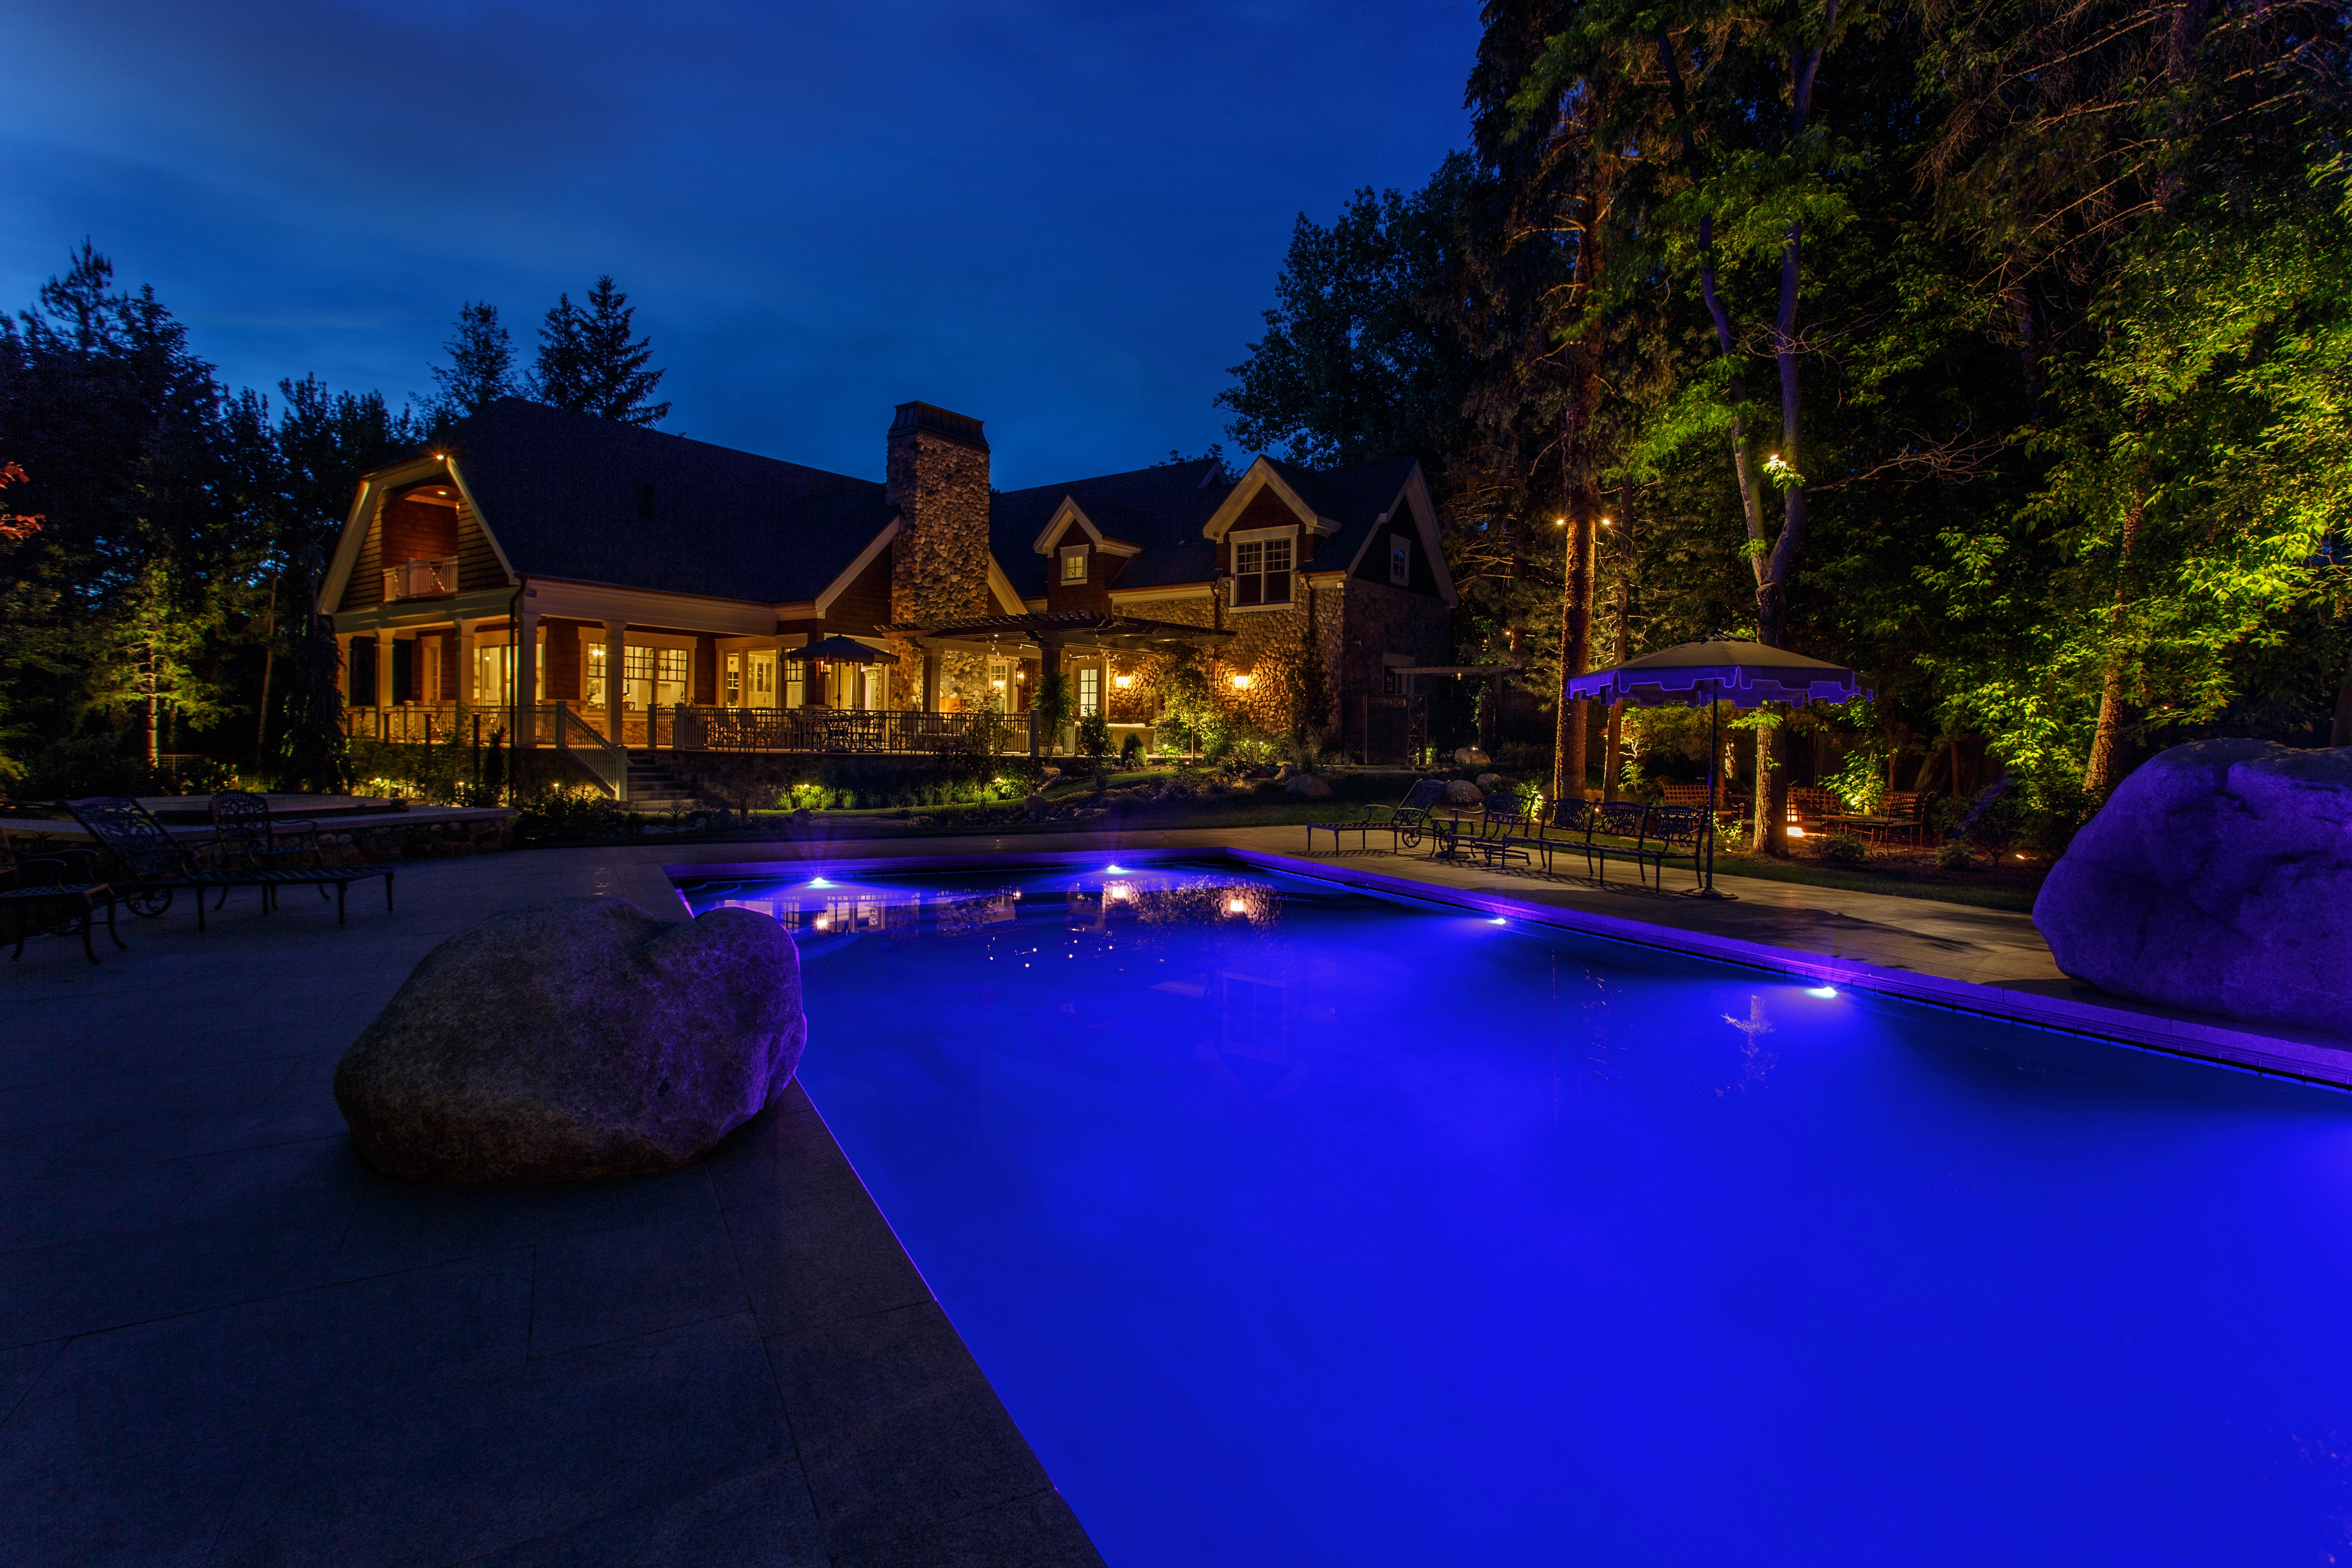 Before you even get in contact with your lighting designer youu0027ve already looked at beautiful images of lighting design. Youu0027ve figured out what you like ... & The Bright Ideas Blog | Landscape Lighting Pro of Utah | Landscape ...